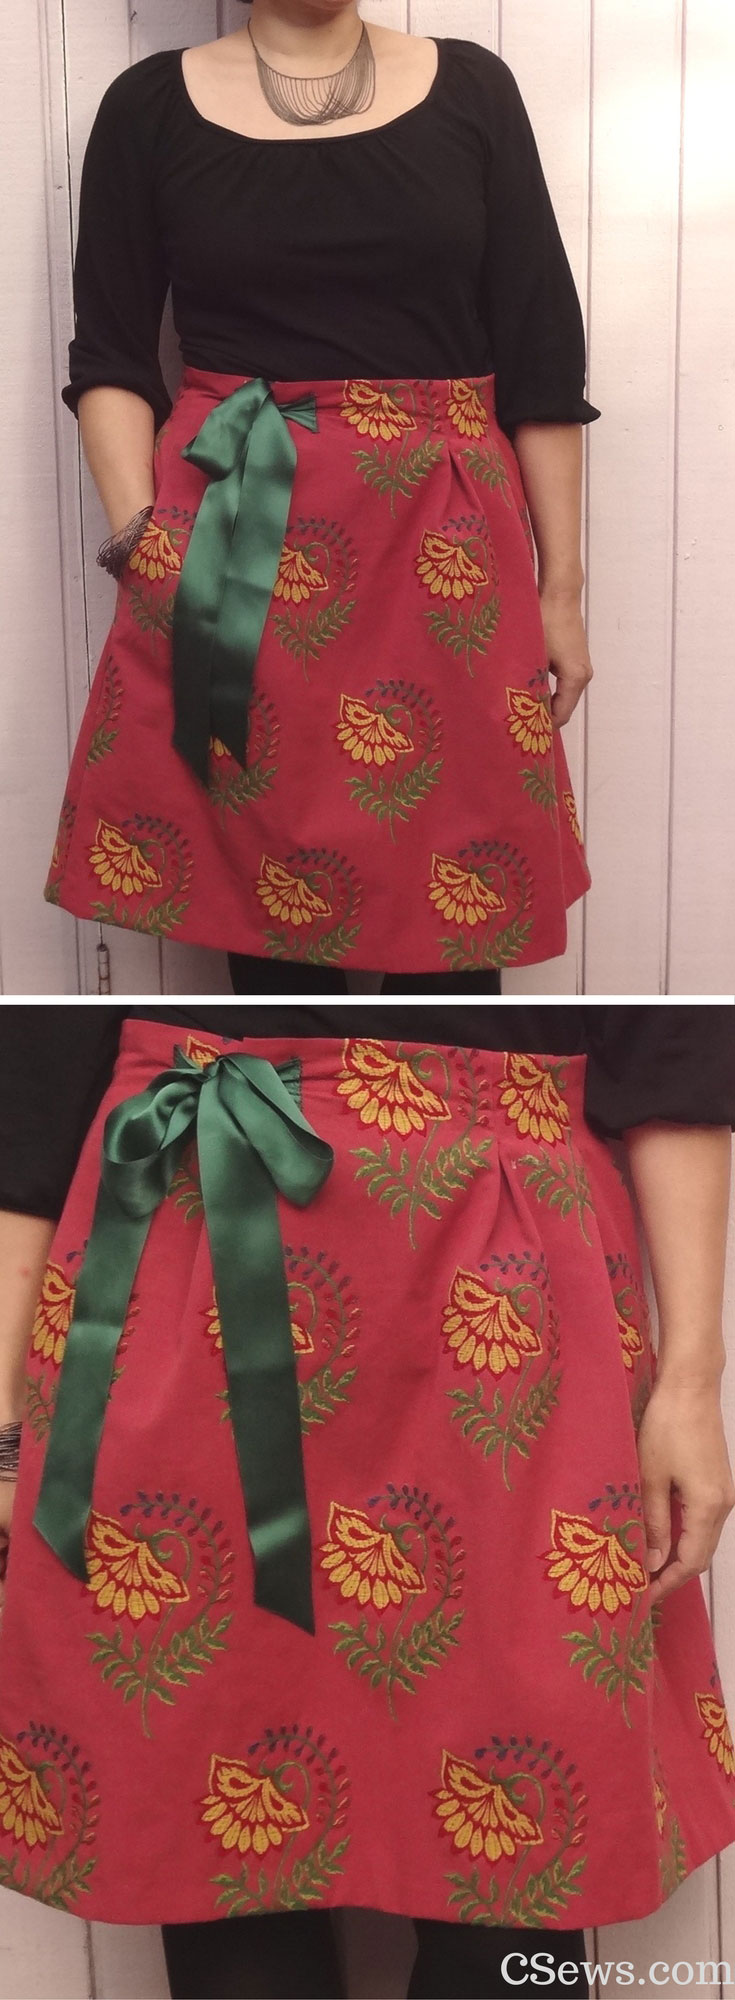 How to make an adjustable waist skirt - using the Chardon skirt sewing patterns by Deer and Doe